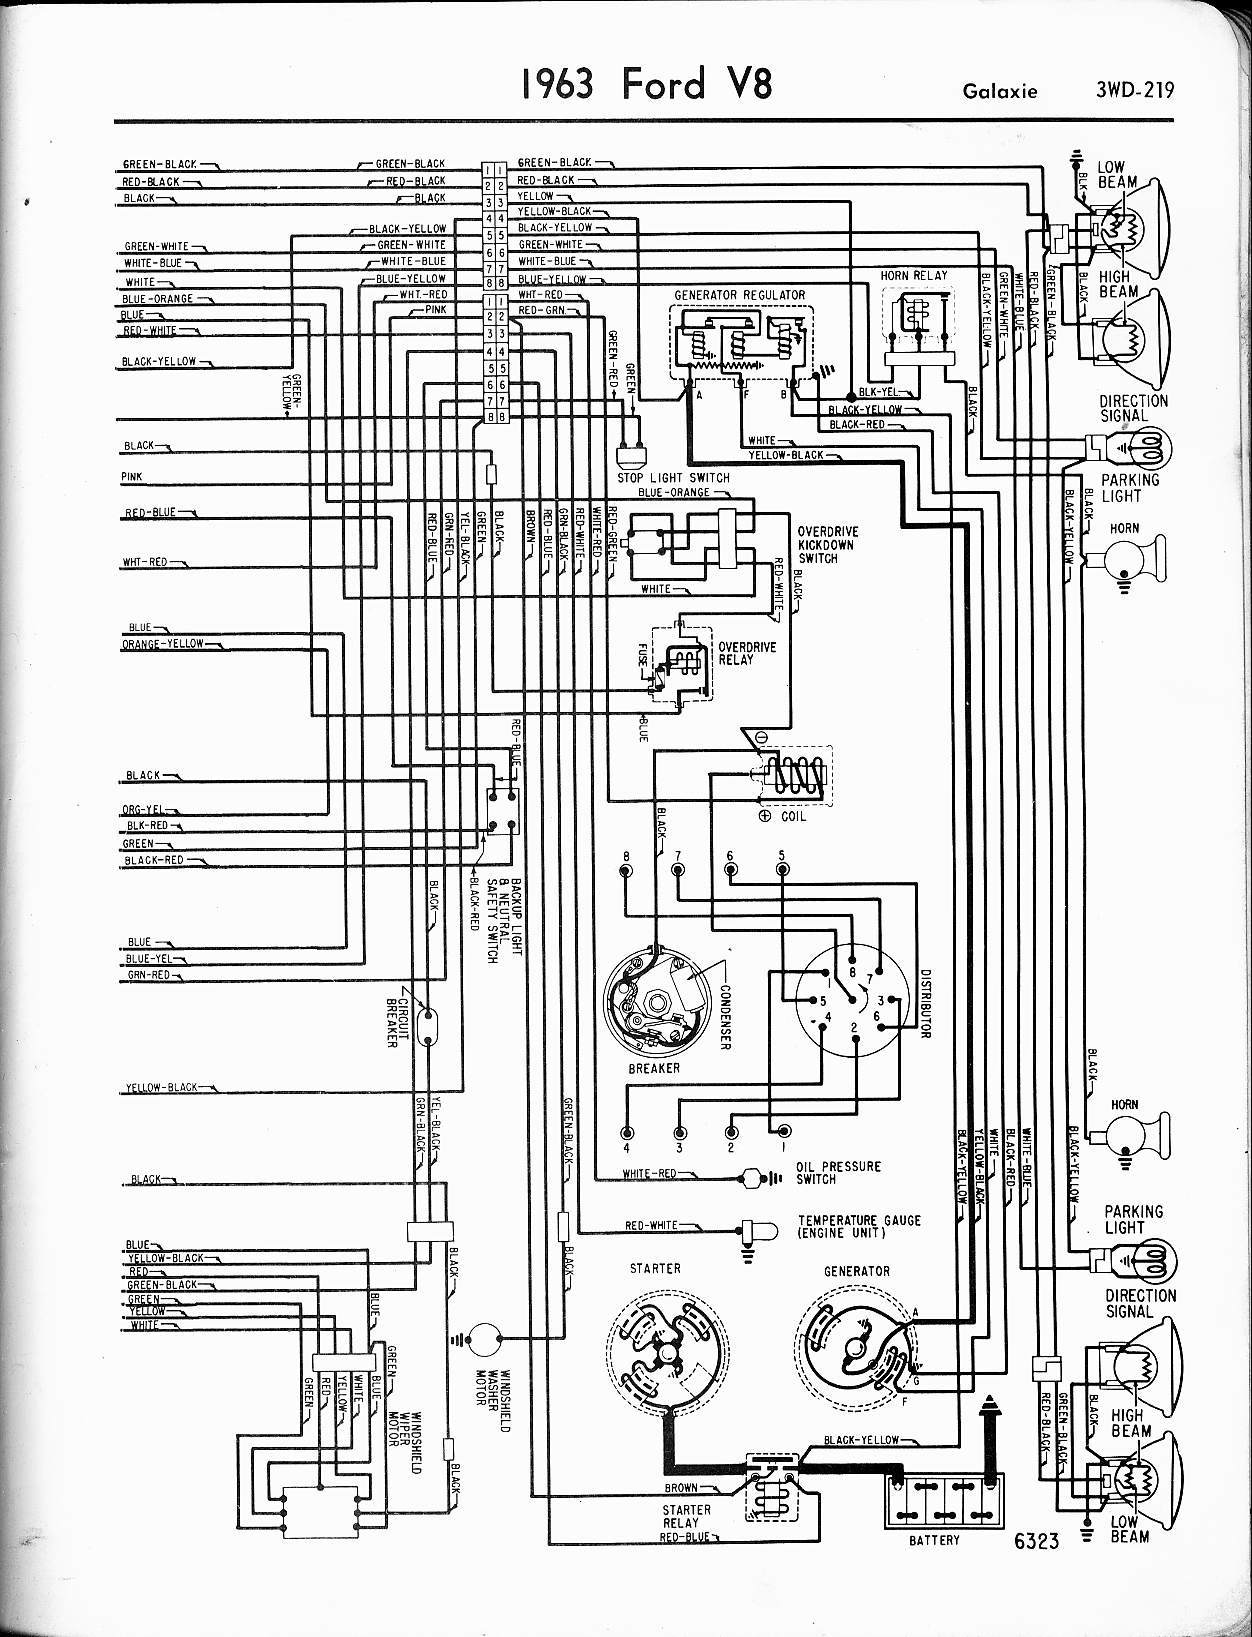 74D7F1 Wiring Diagram Ford Galaxy 2001 | Wiring LibraryWiring Library